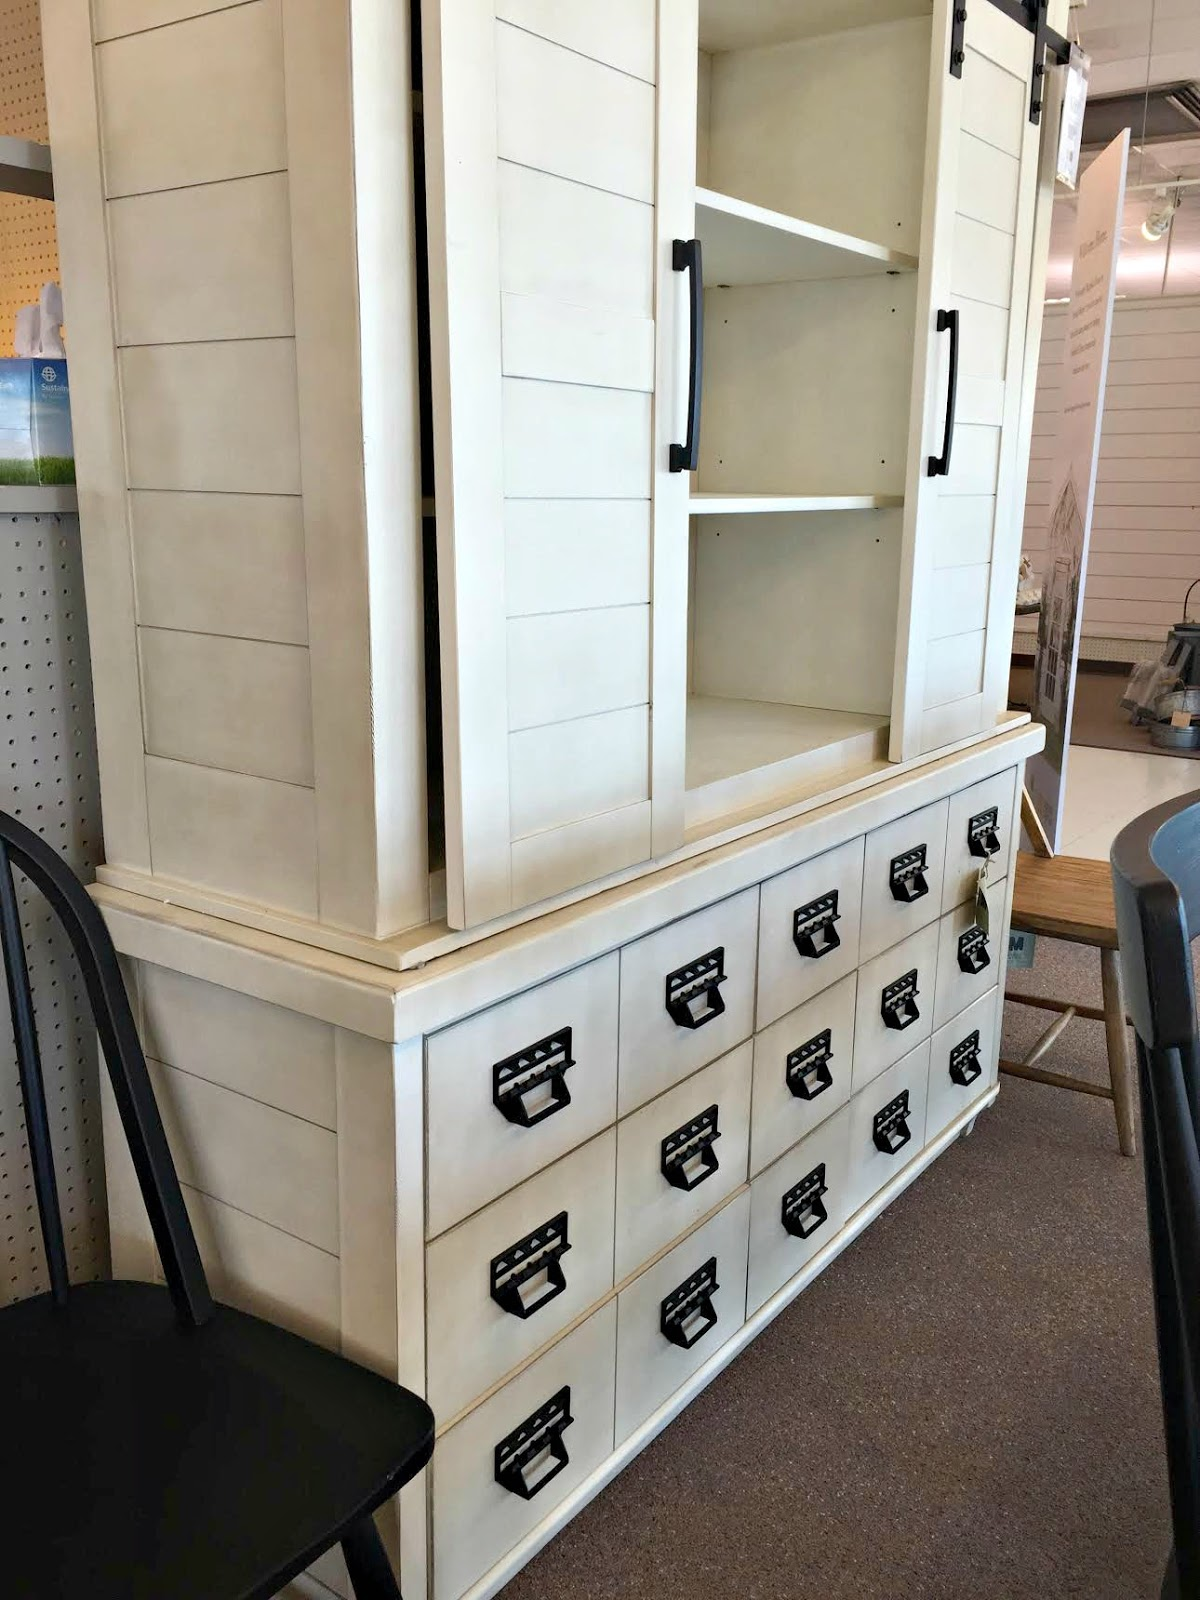 New Line Of Magnolia Homes Furniture And Decor For A